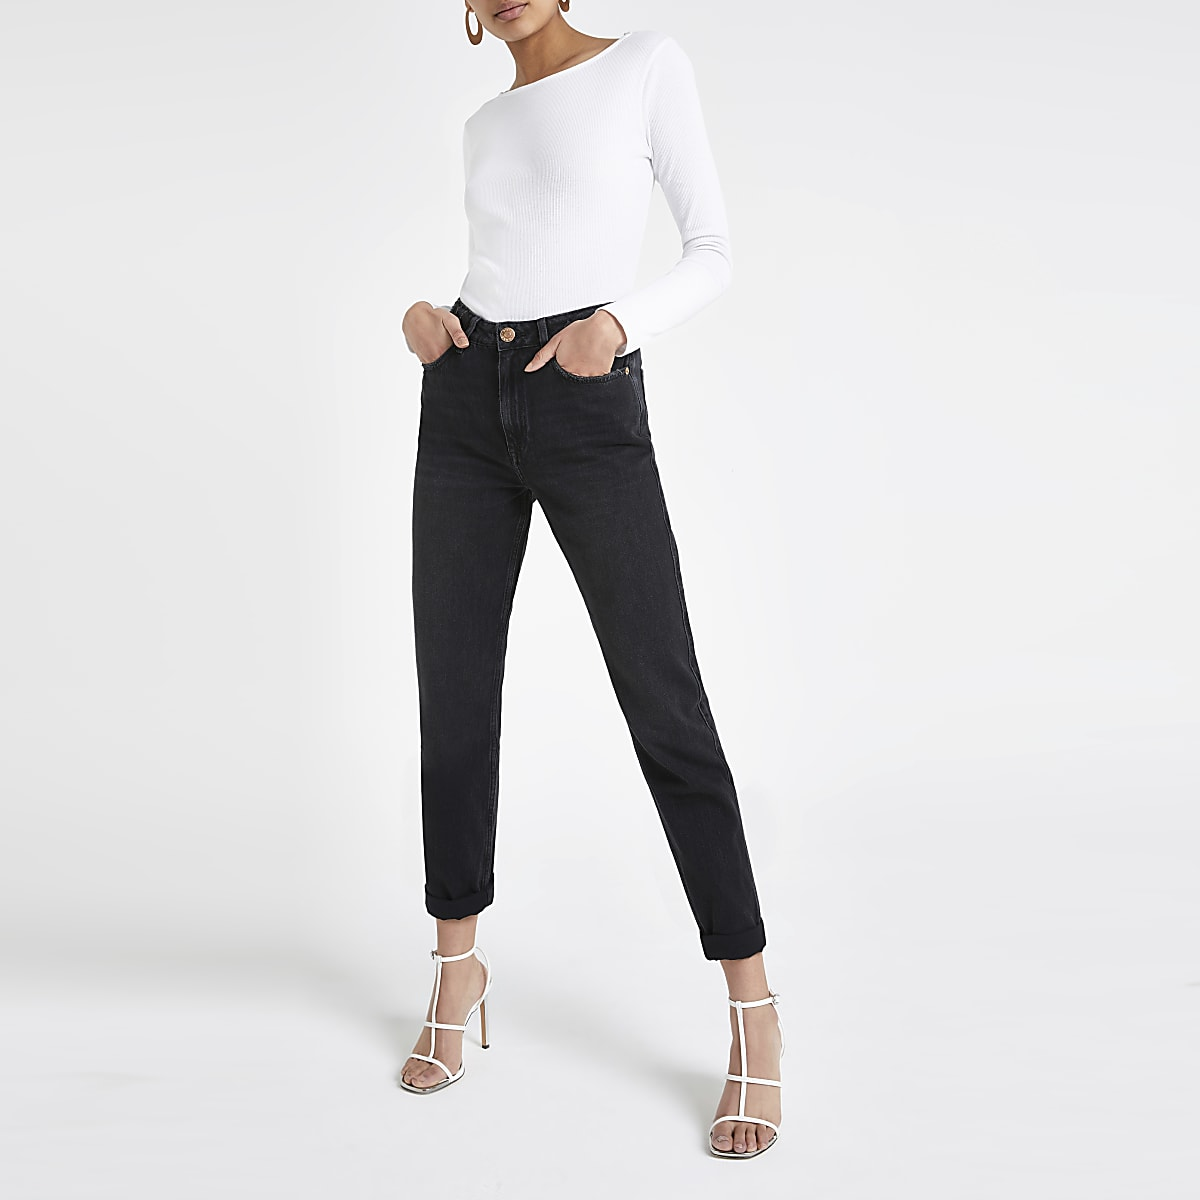 Black Mom high rise jeans